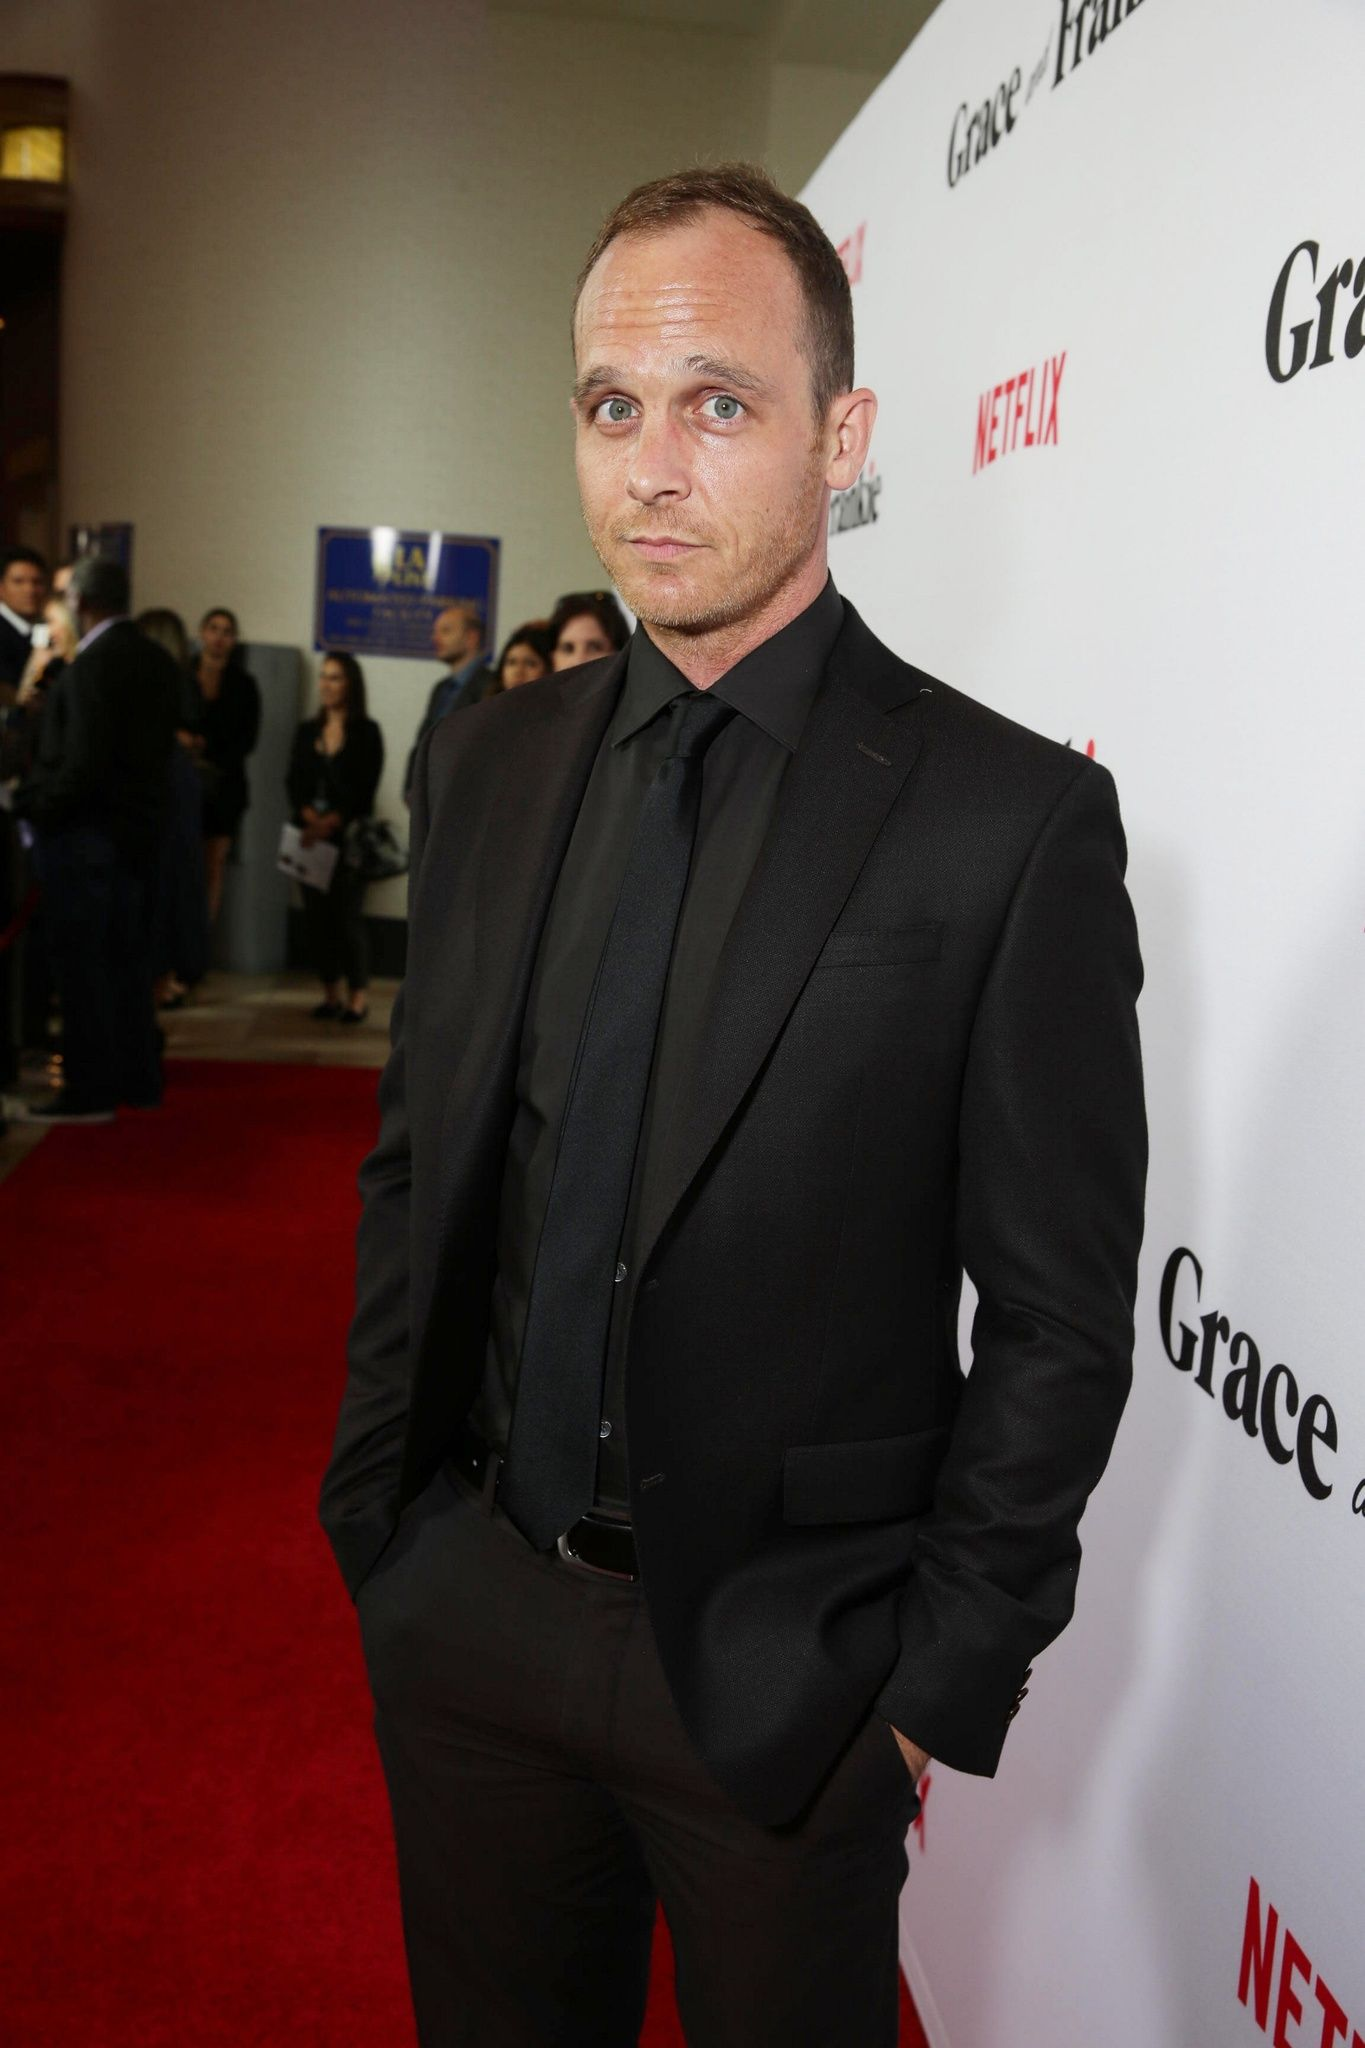 Ethan Embry Grace And Frankie: Pin On GRACE AND FRANKIE